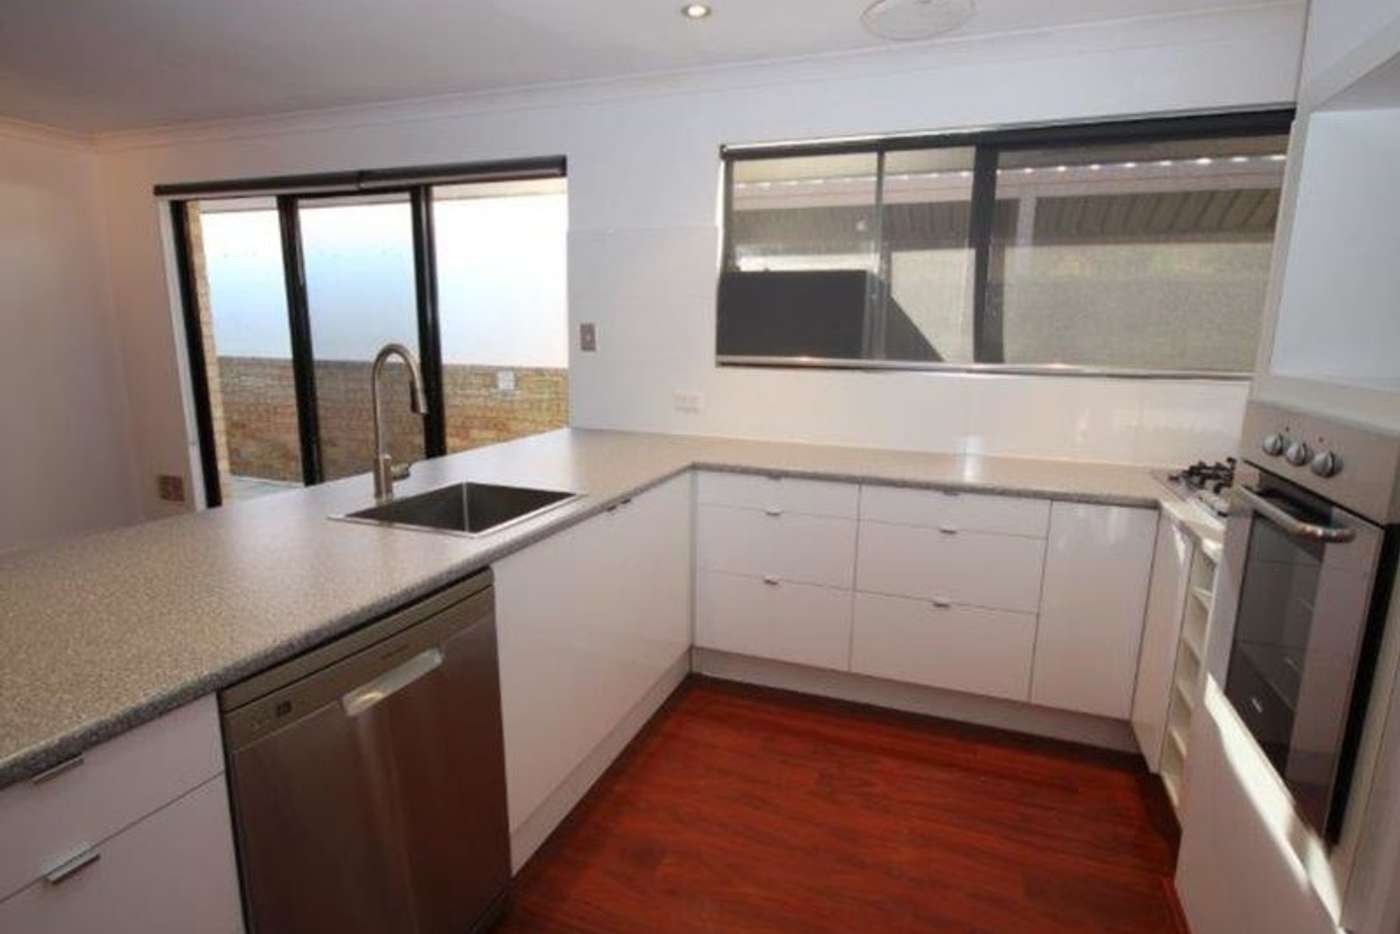 Seventh view of Homely house listing, 106 Tibradden Circle, Ascot WA 6104